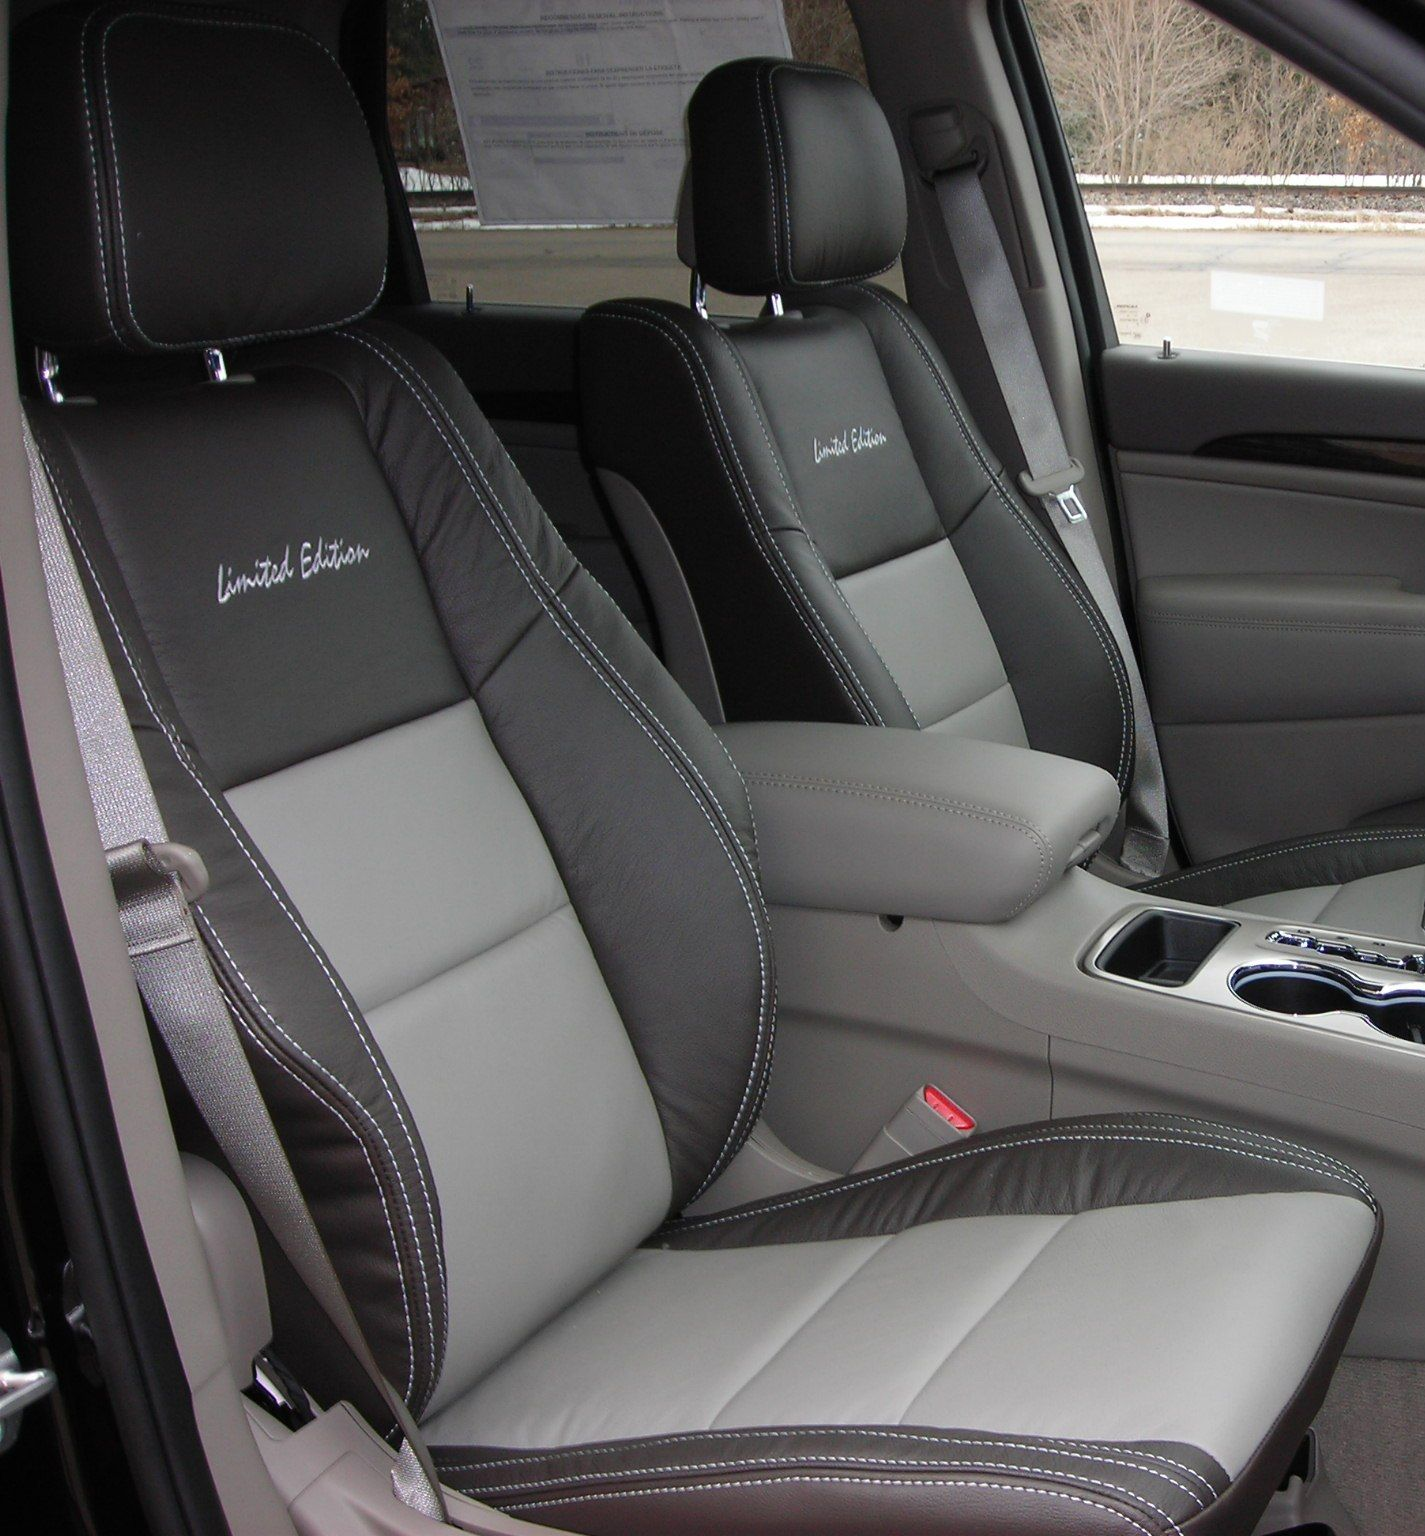 Limited Edition Custom Automotive Leather Seats Jeep Grand Cherokee Custom Seat Covers Clean Leather Seats Jeep Grand